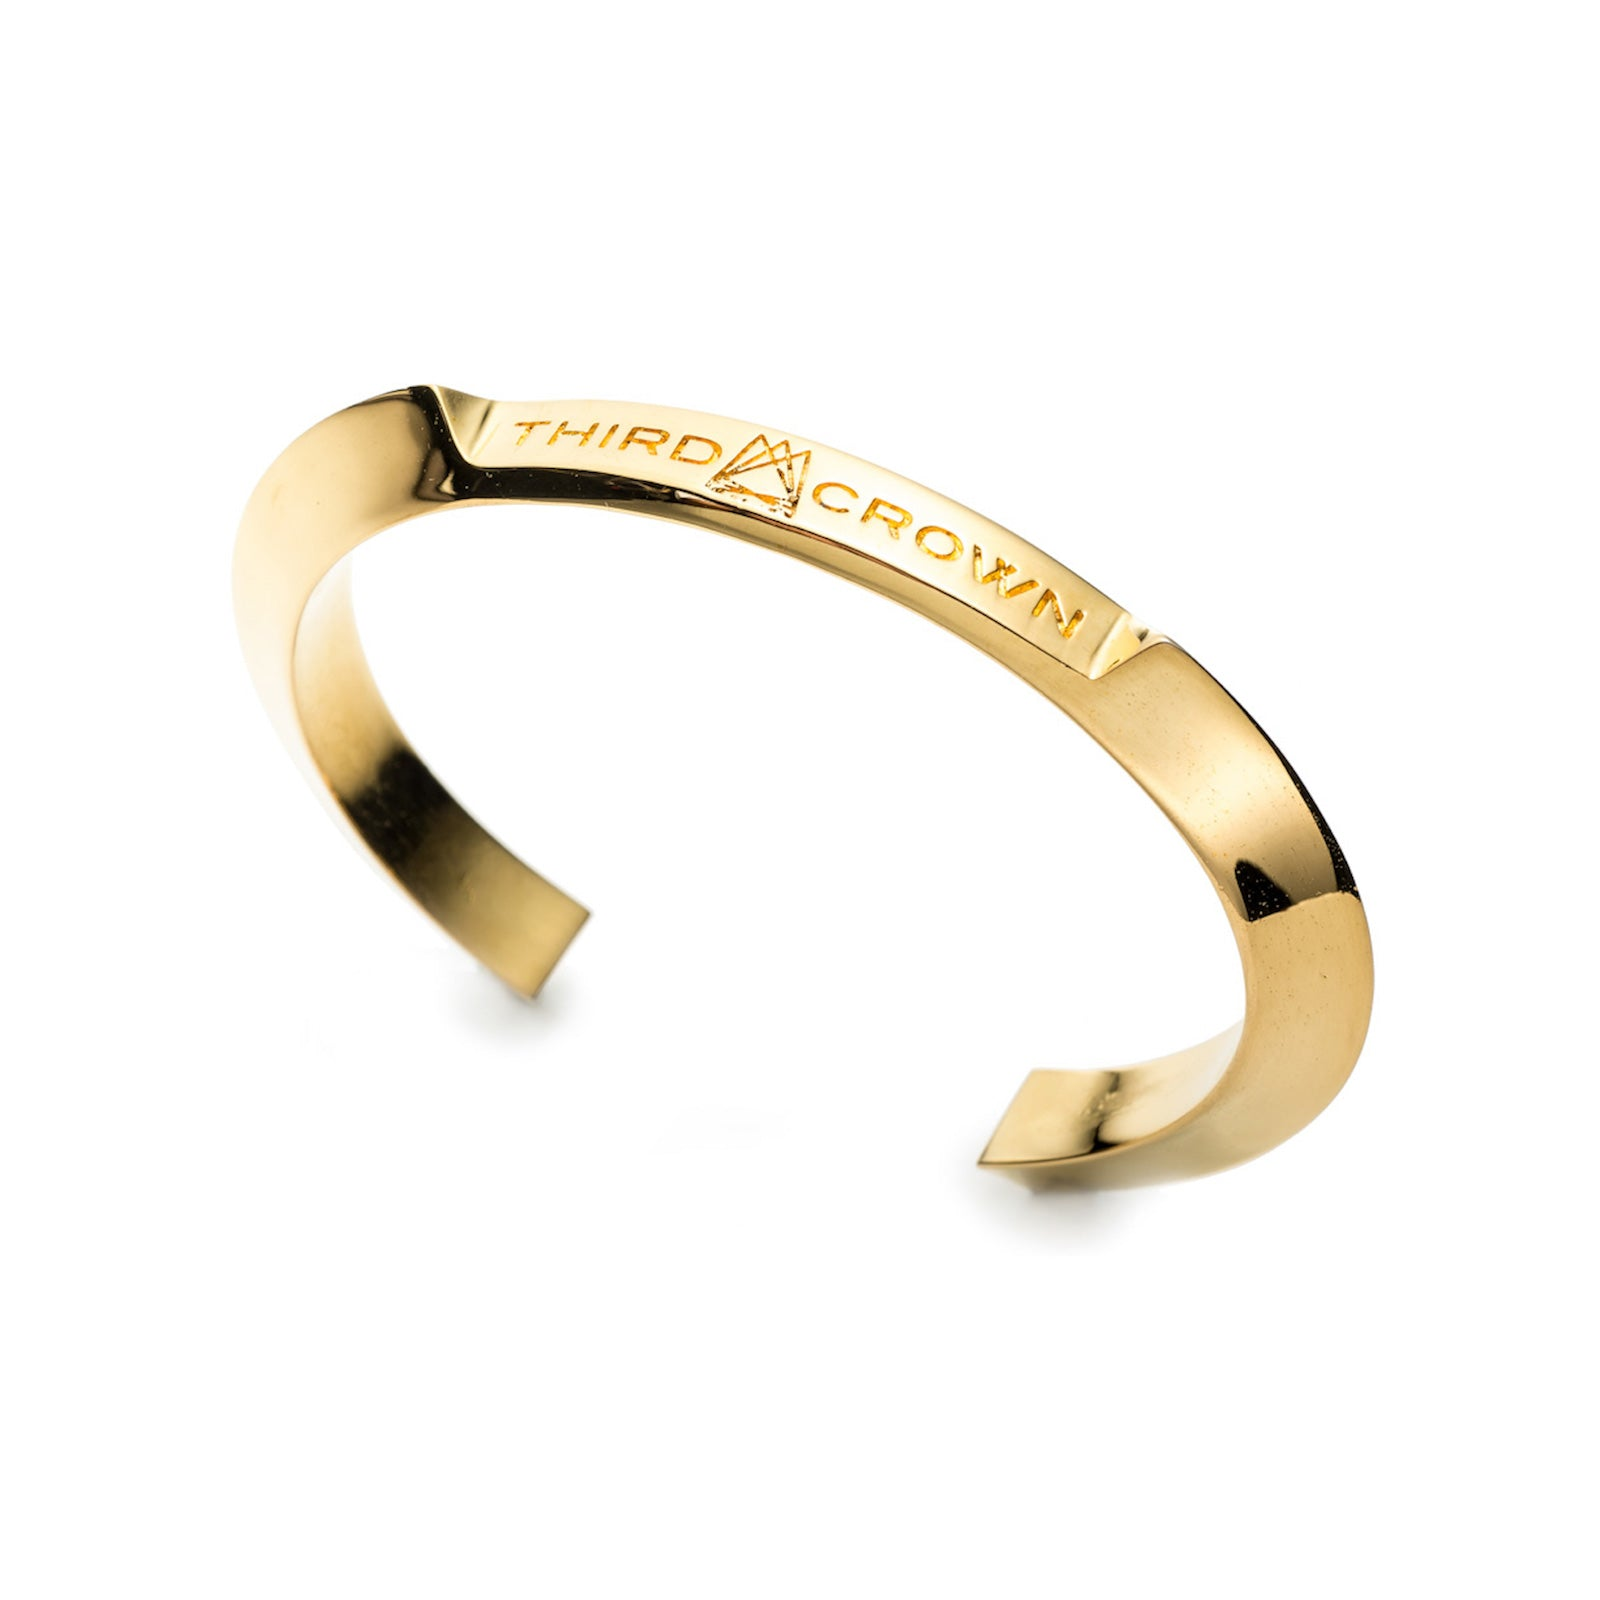 HEDRON ID CUFF - 18K GOLD PLATED BRASS